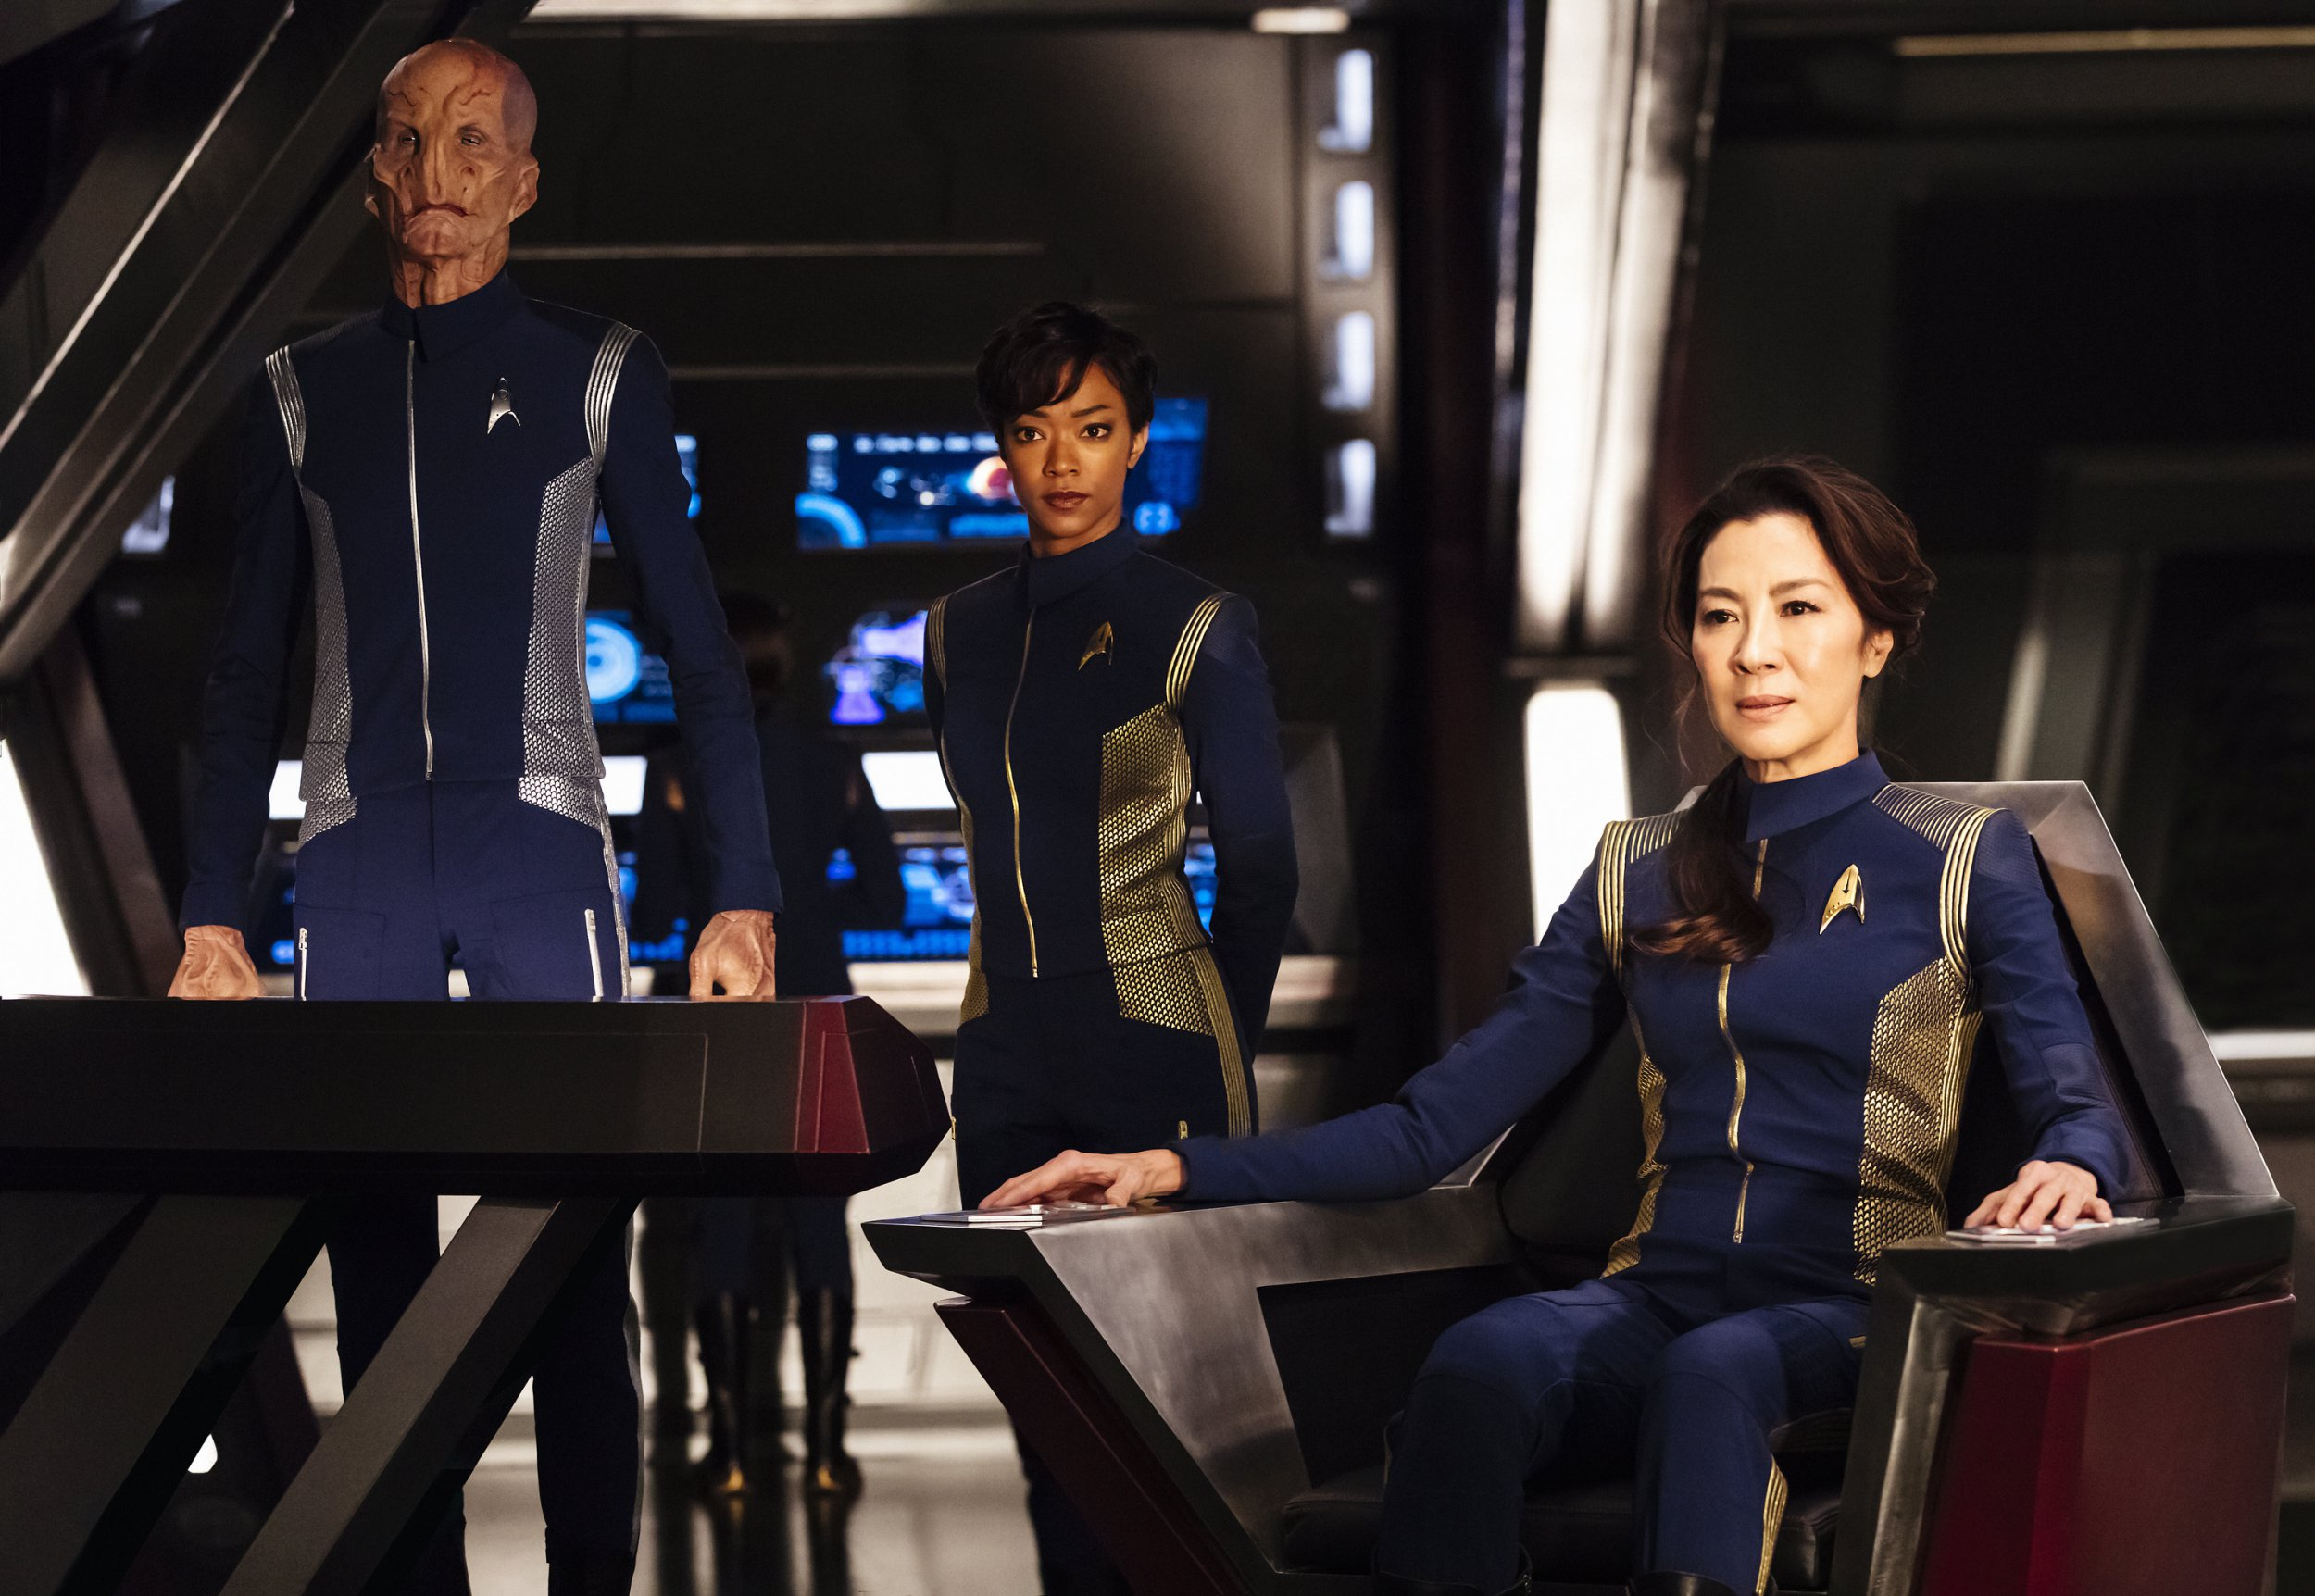 Star Trek: Discovery costumes are all gender neutral as show sets out to make clothes that 'would apply to everybody'